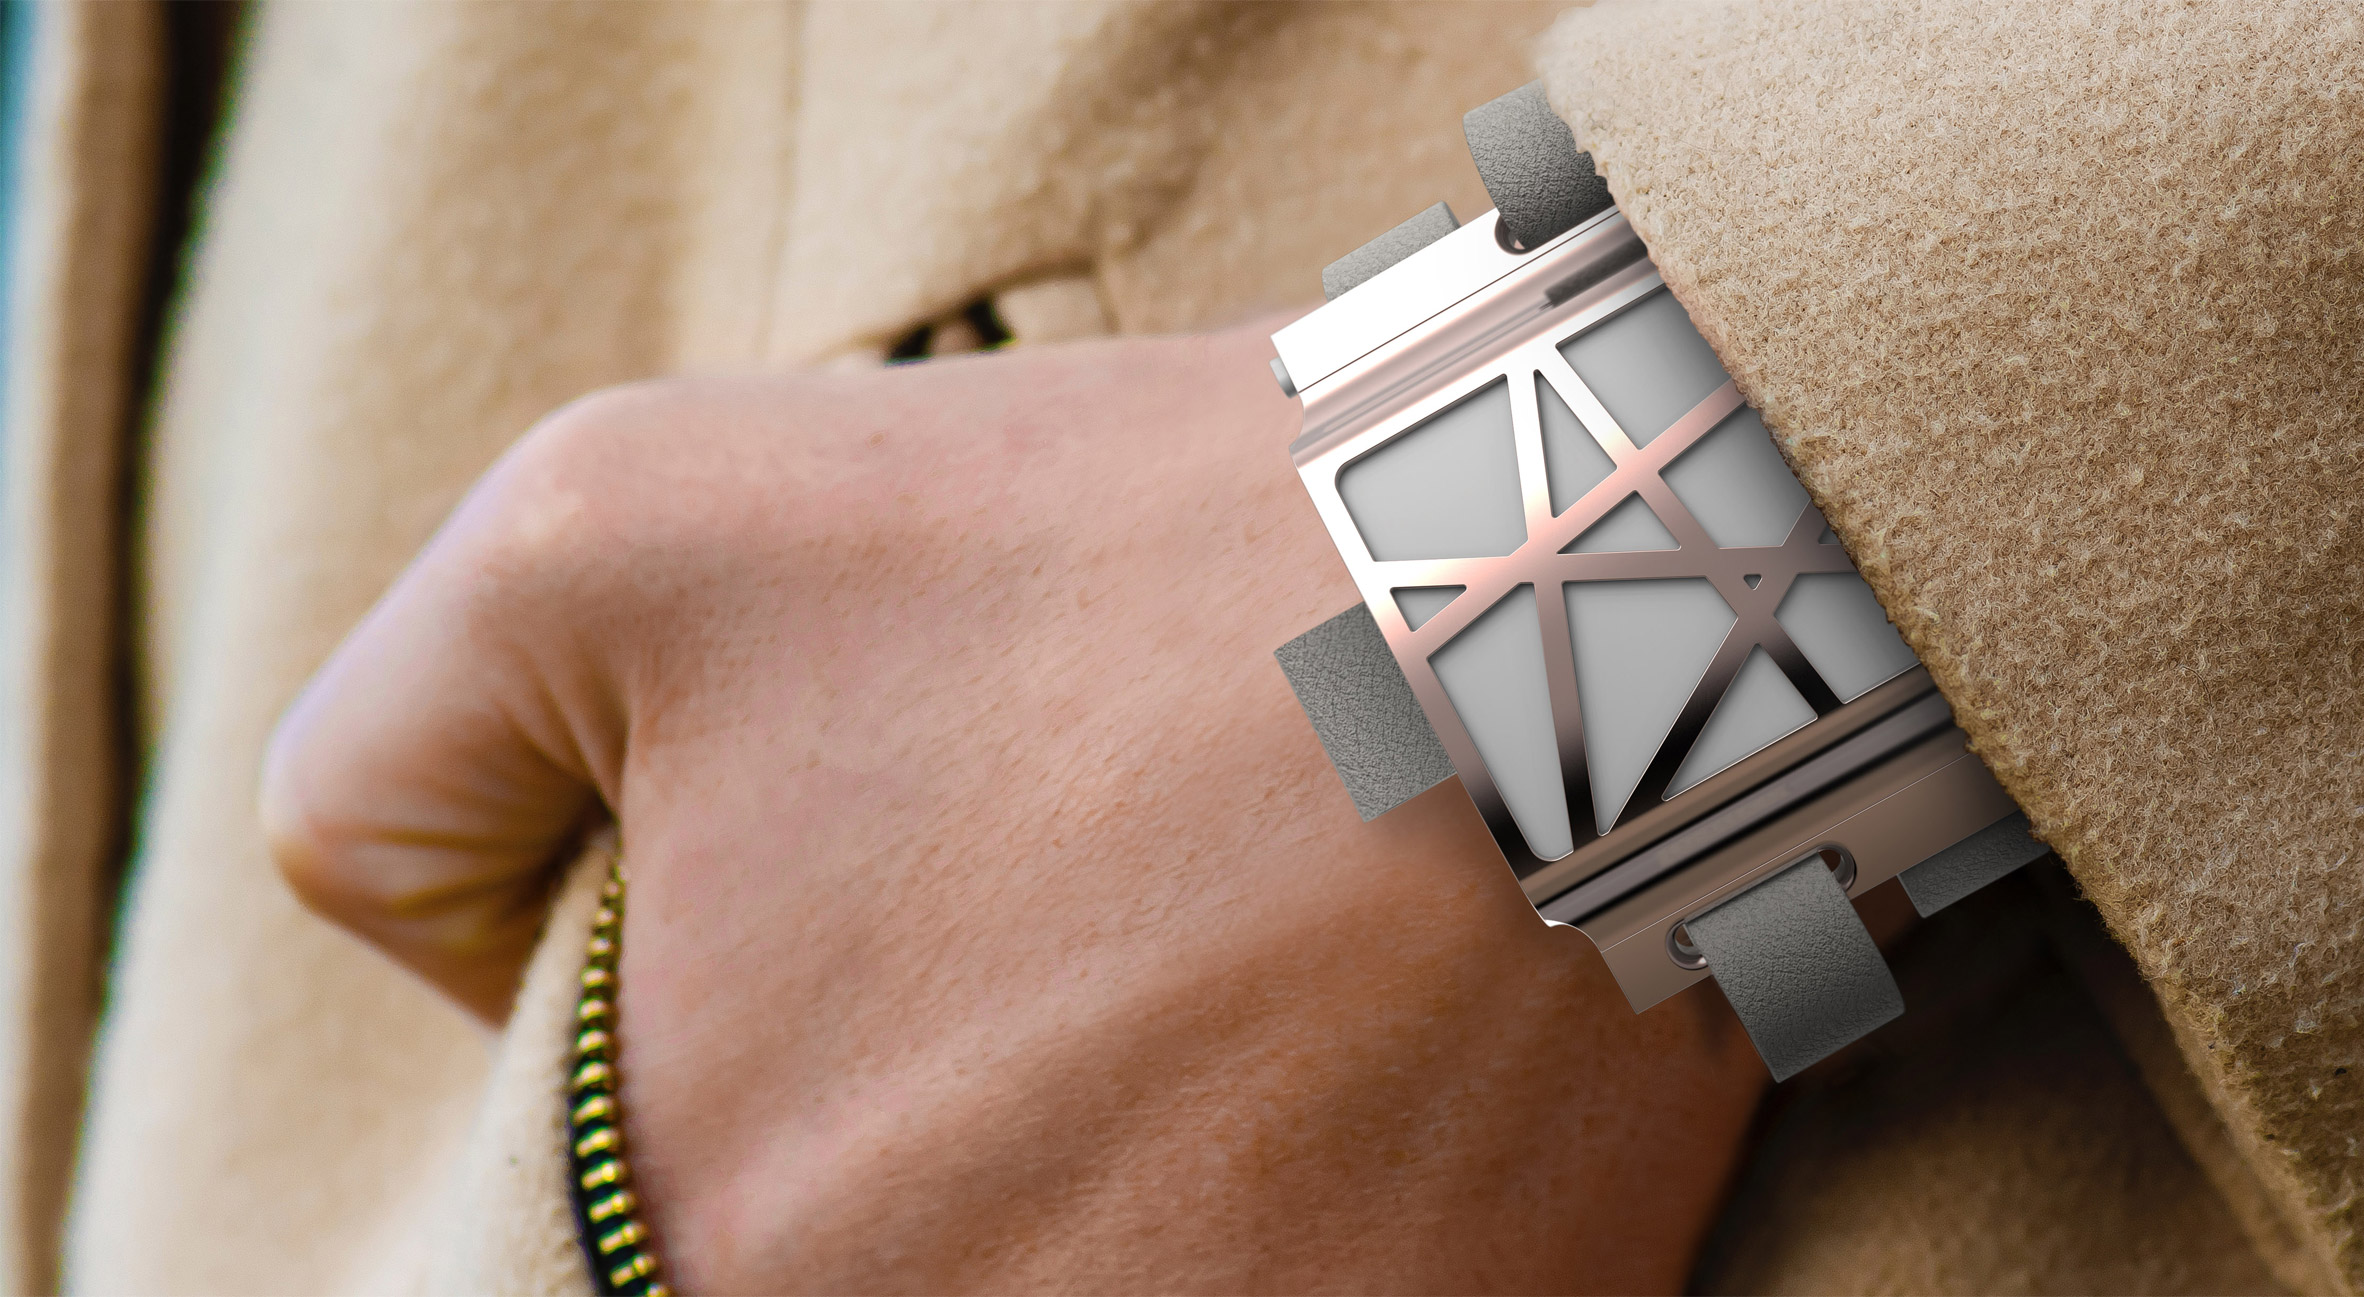 Grace wristband is designed to alleviate and track menopause symptoms